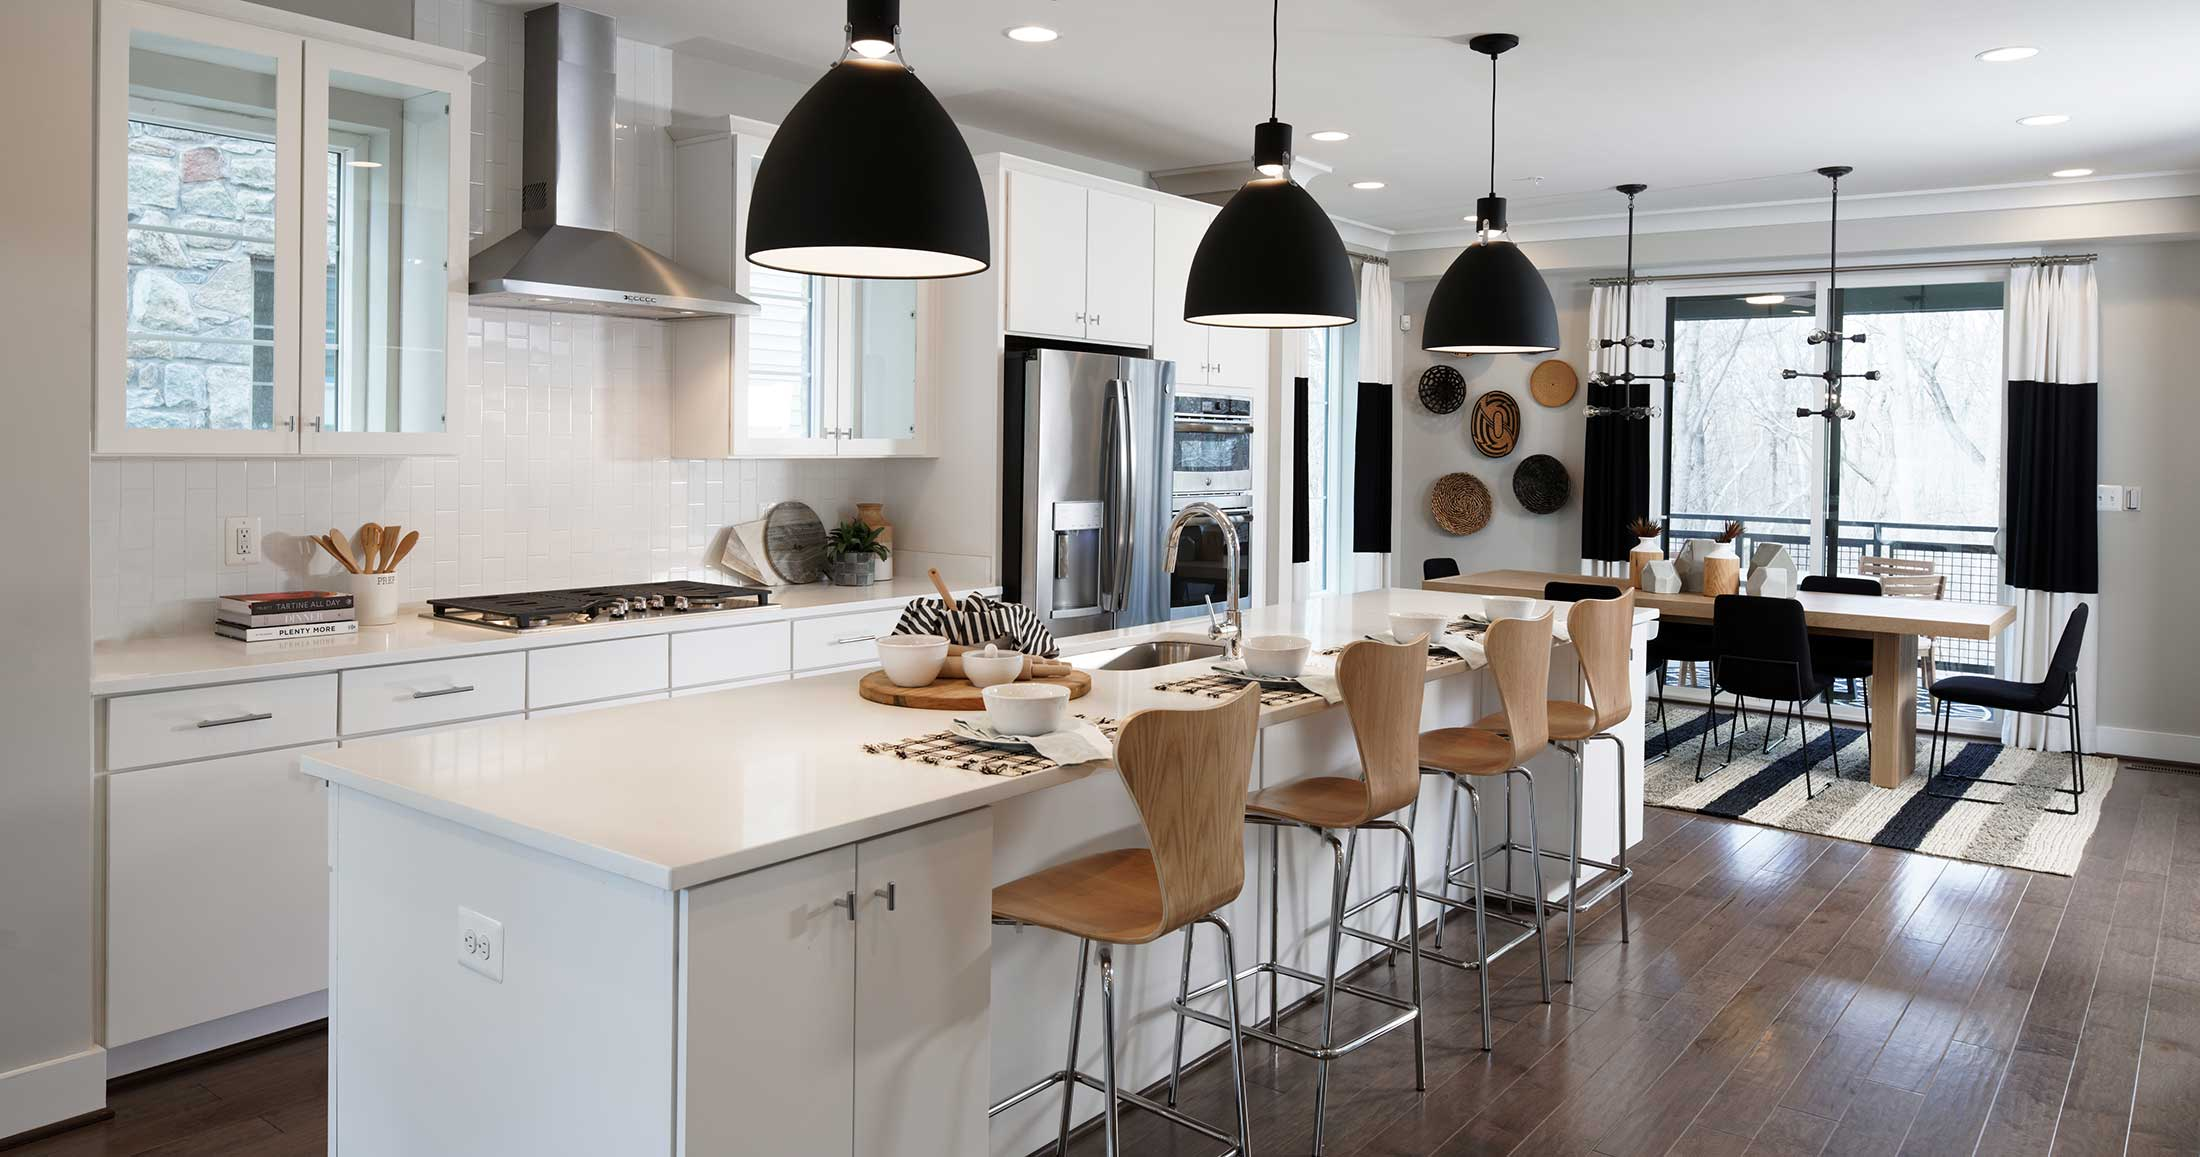 Kitchen & Dining Space, Townhomes in Chantilly VA